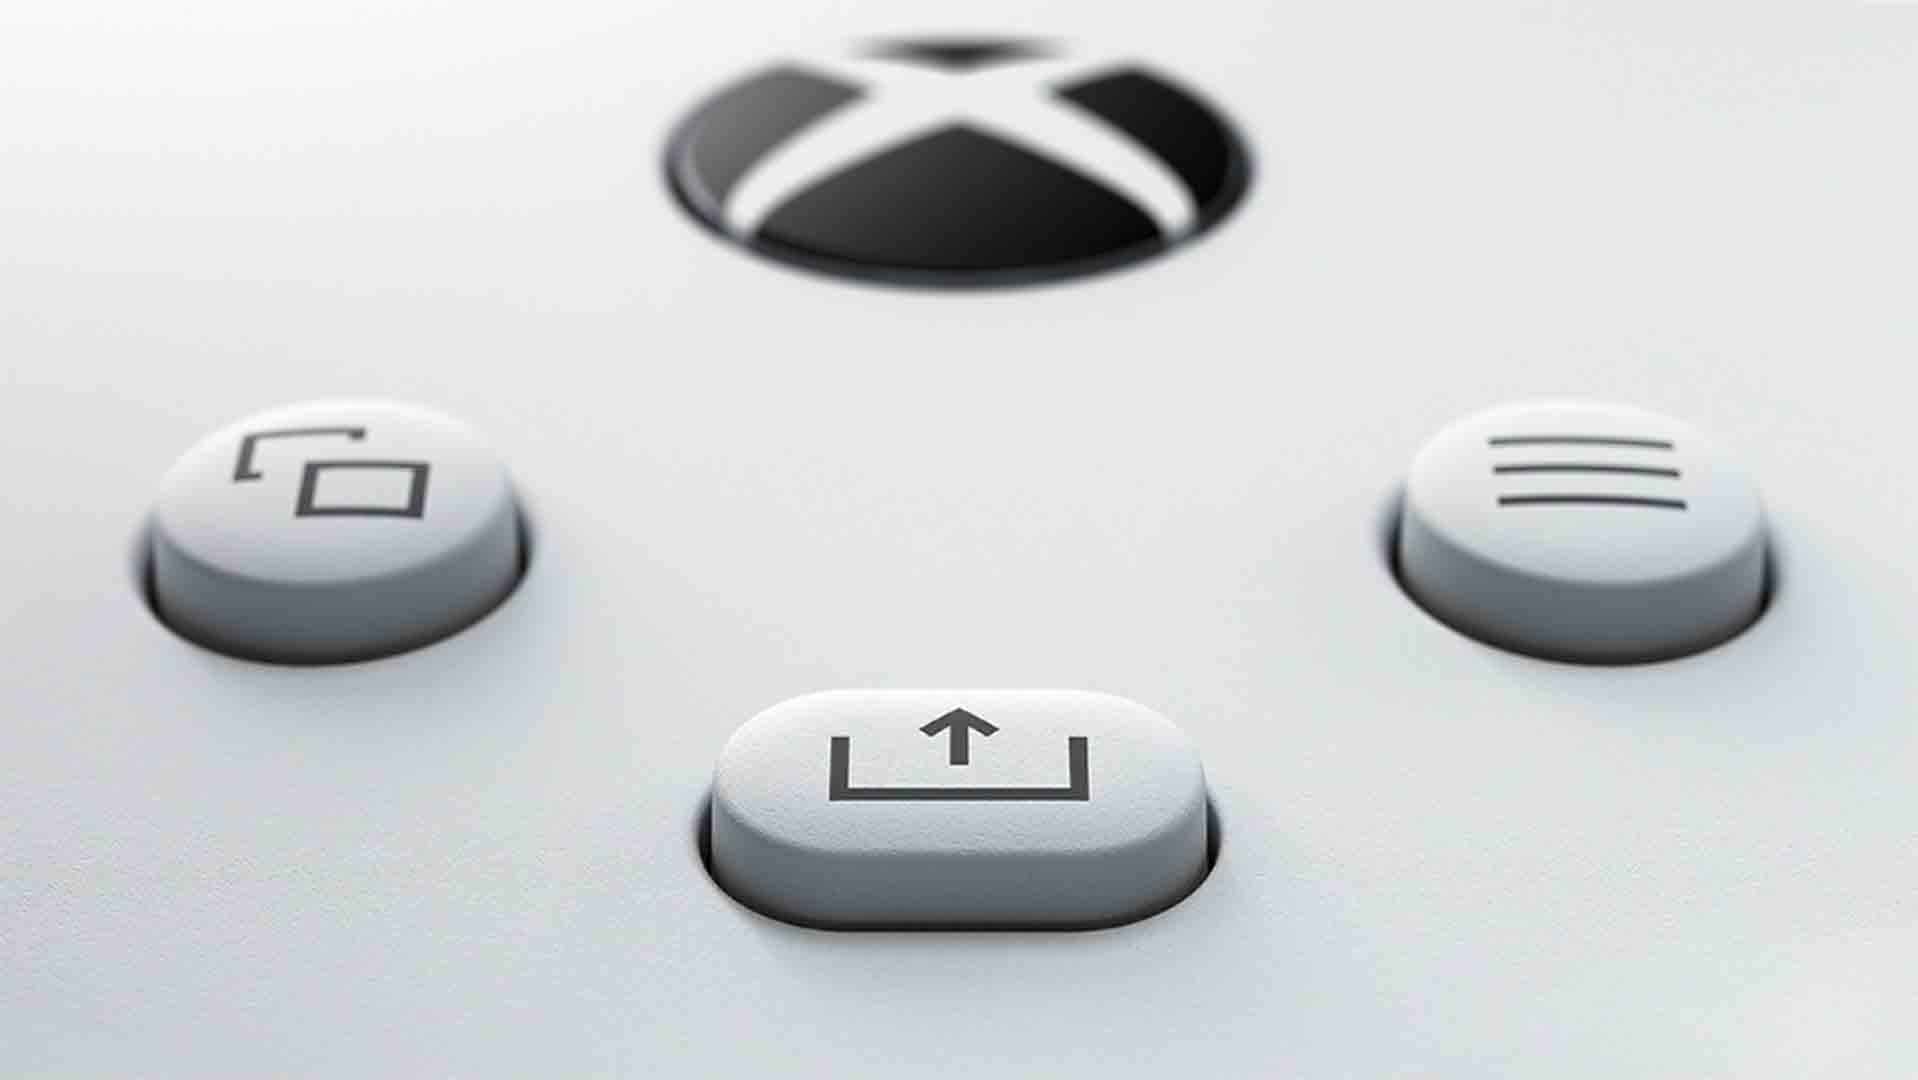 Xbox Wireless Controller - Robot White - Post Launch Shipments (expected 2020) - Screenshot 3